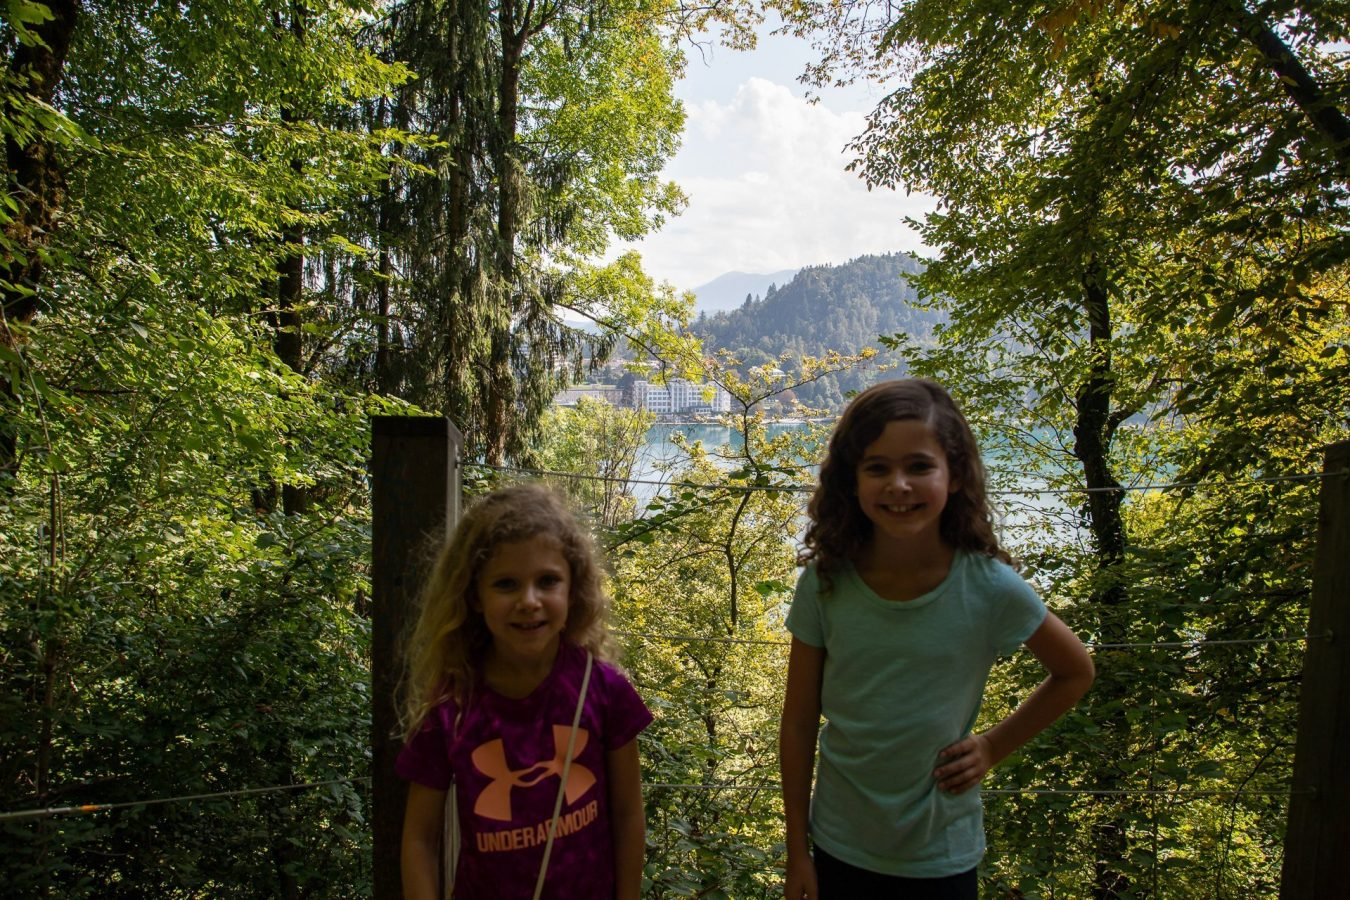 Along the hike up to Bled Castle